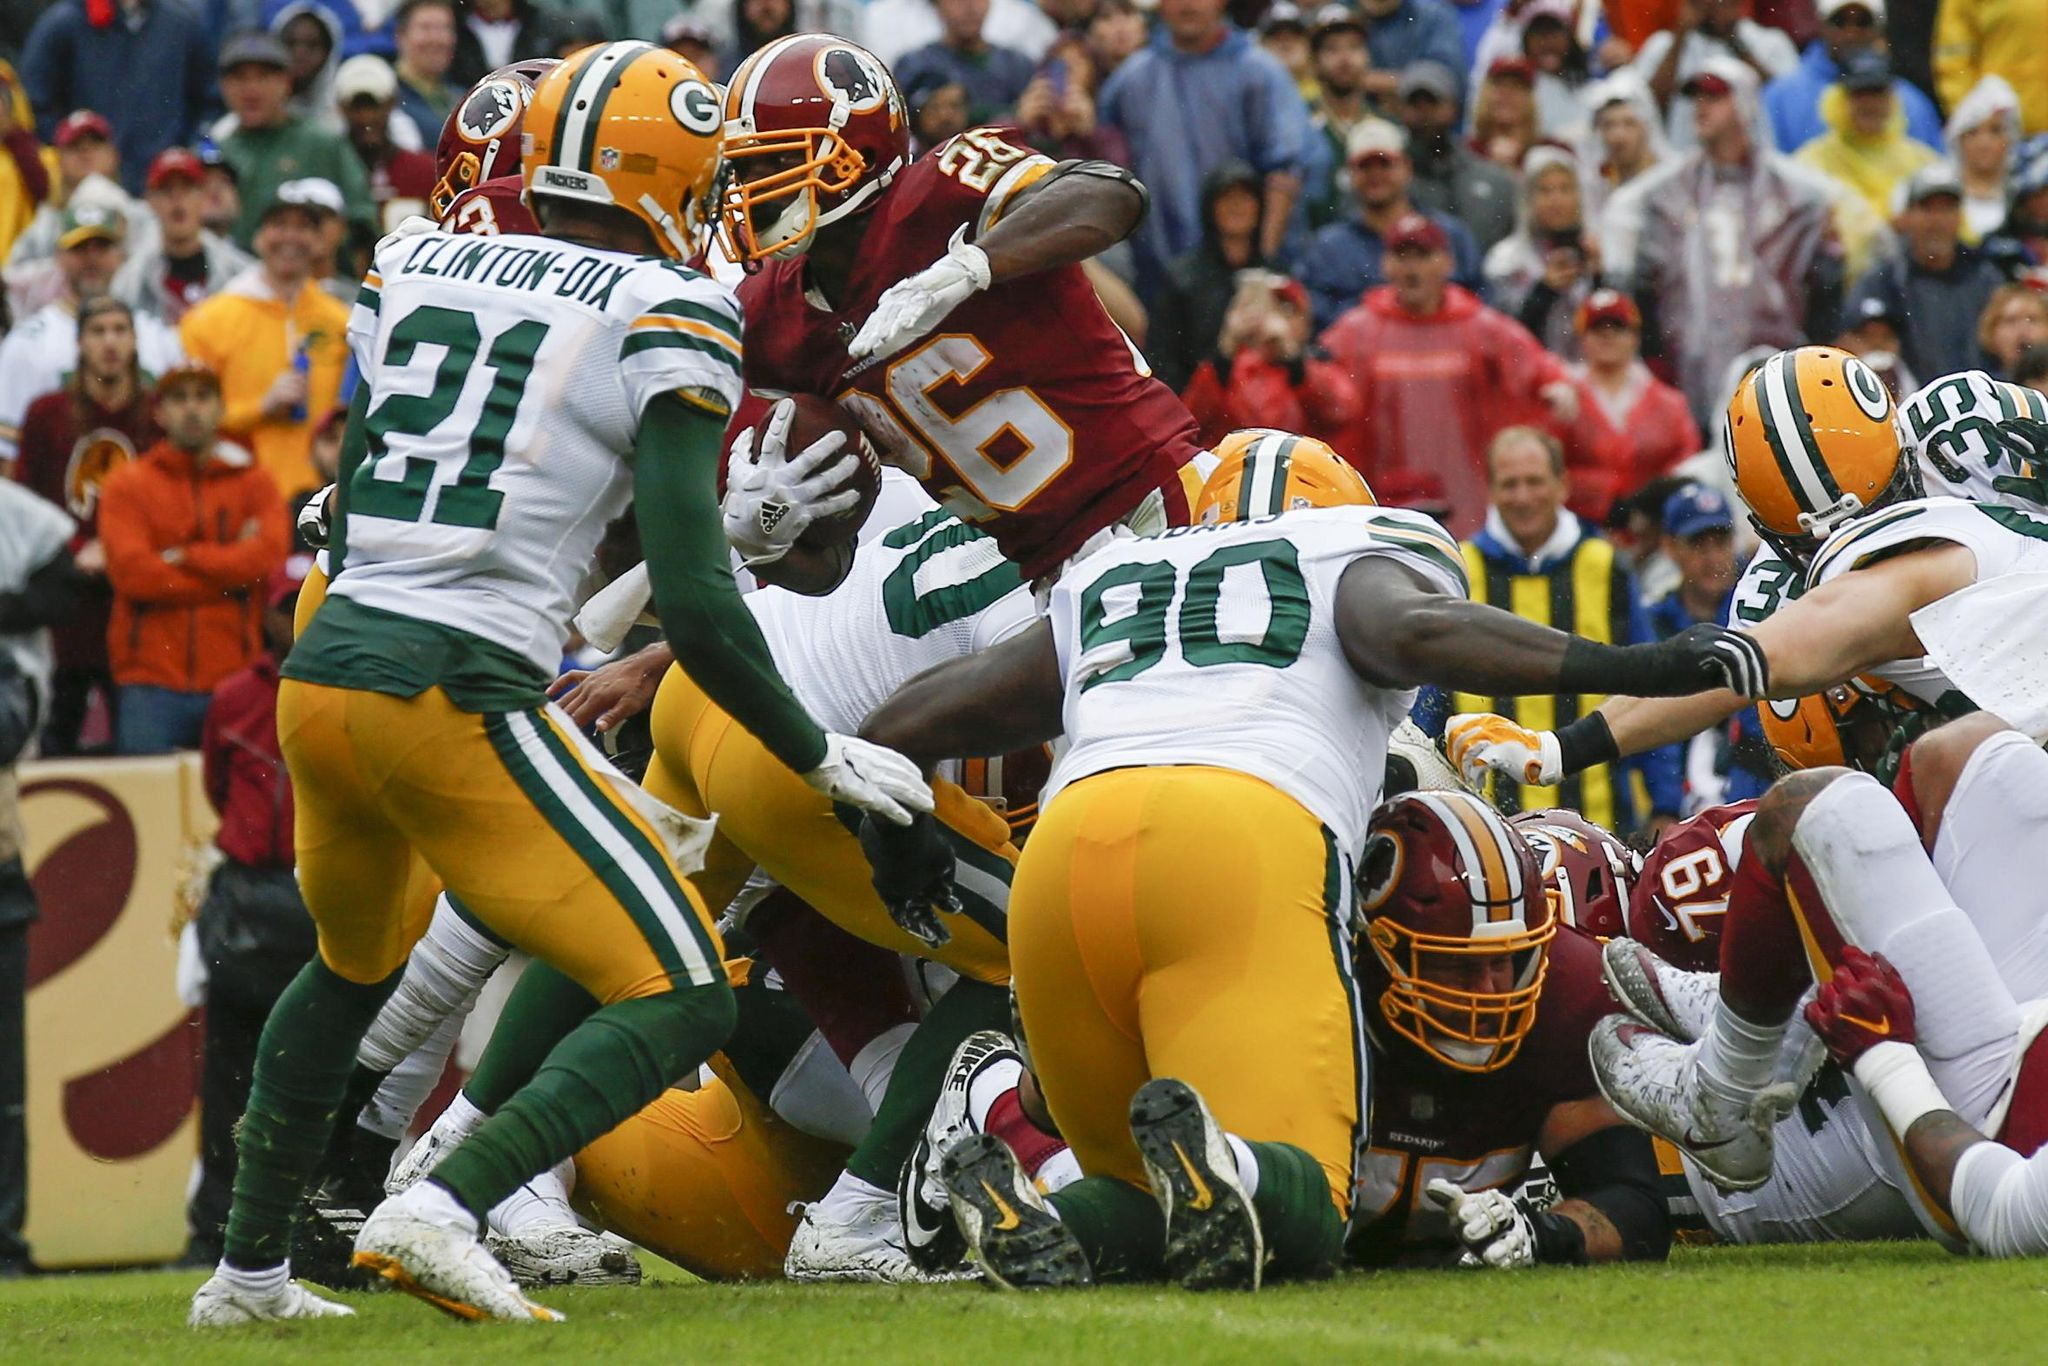 Packers_redskins_football_64421_s2048x1366